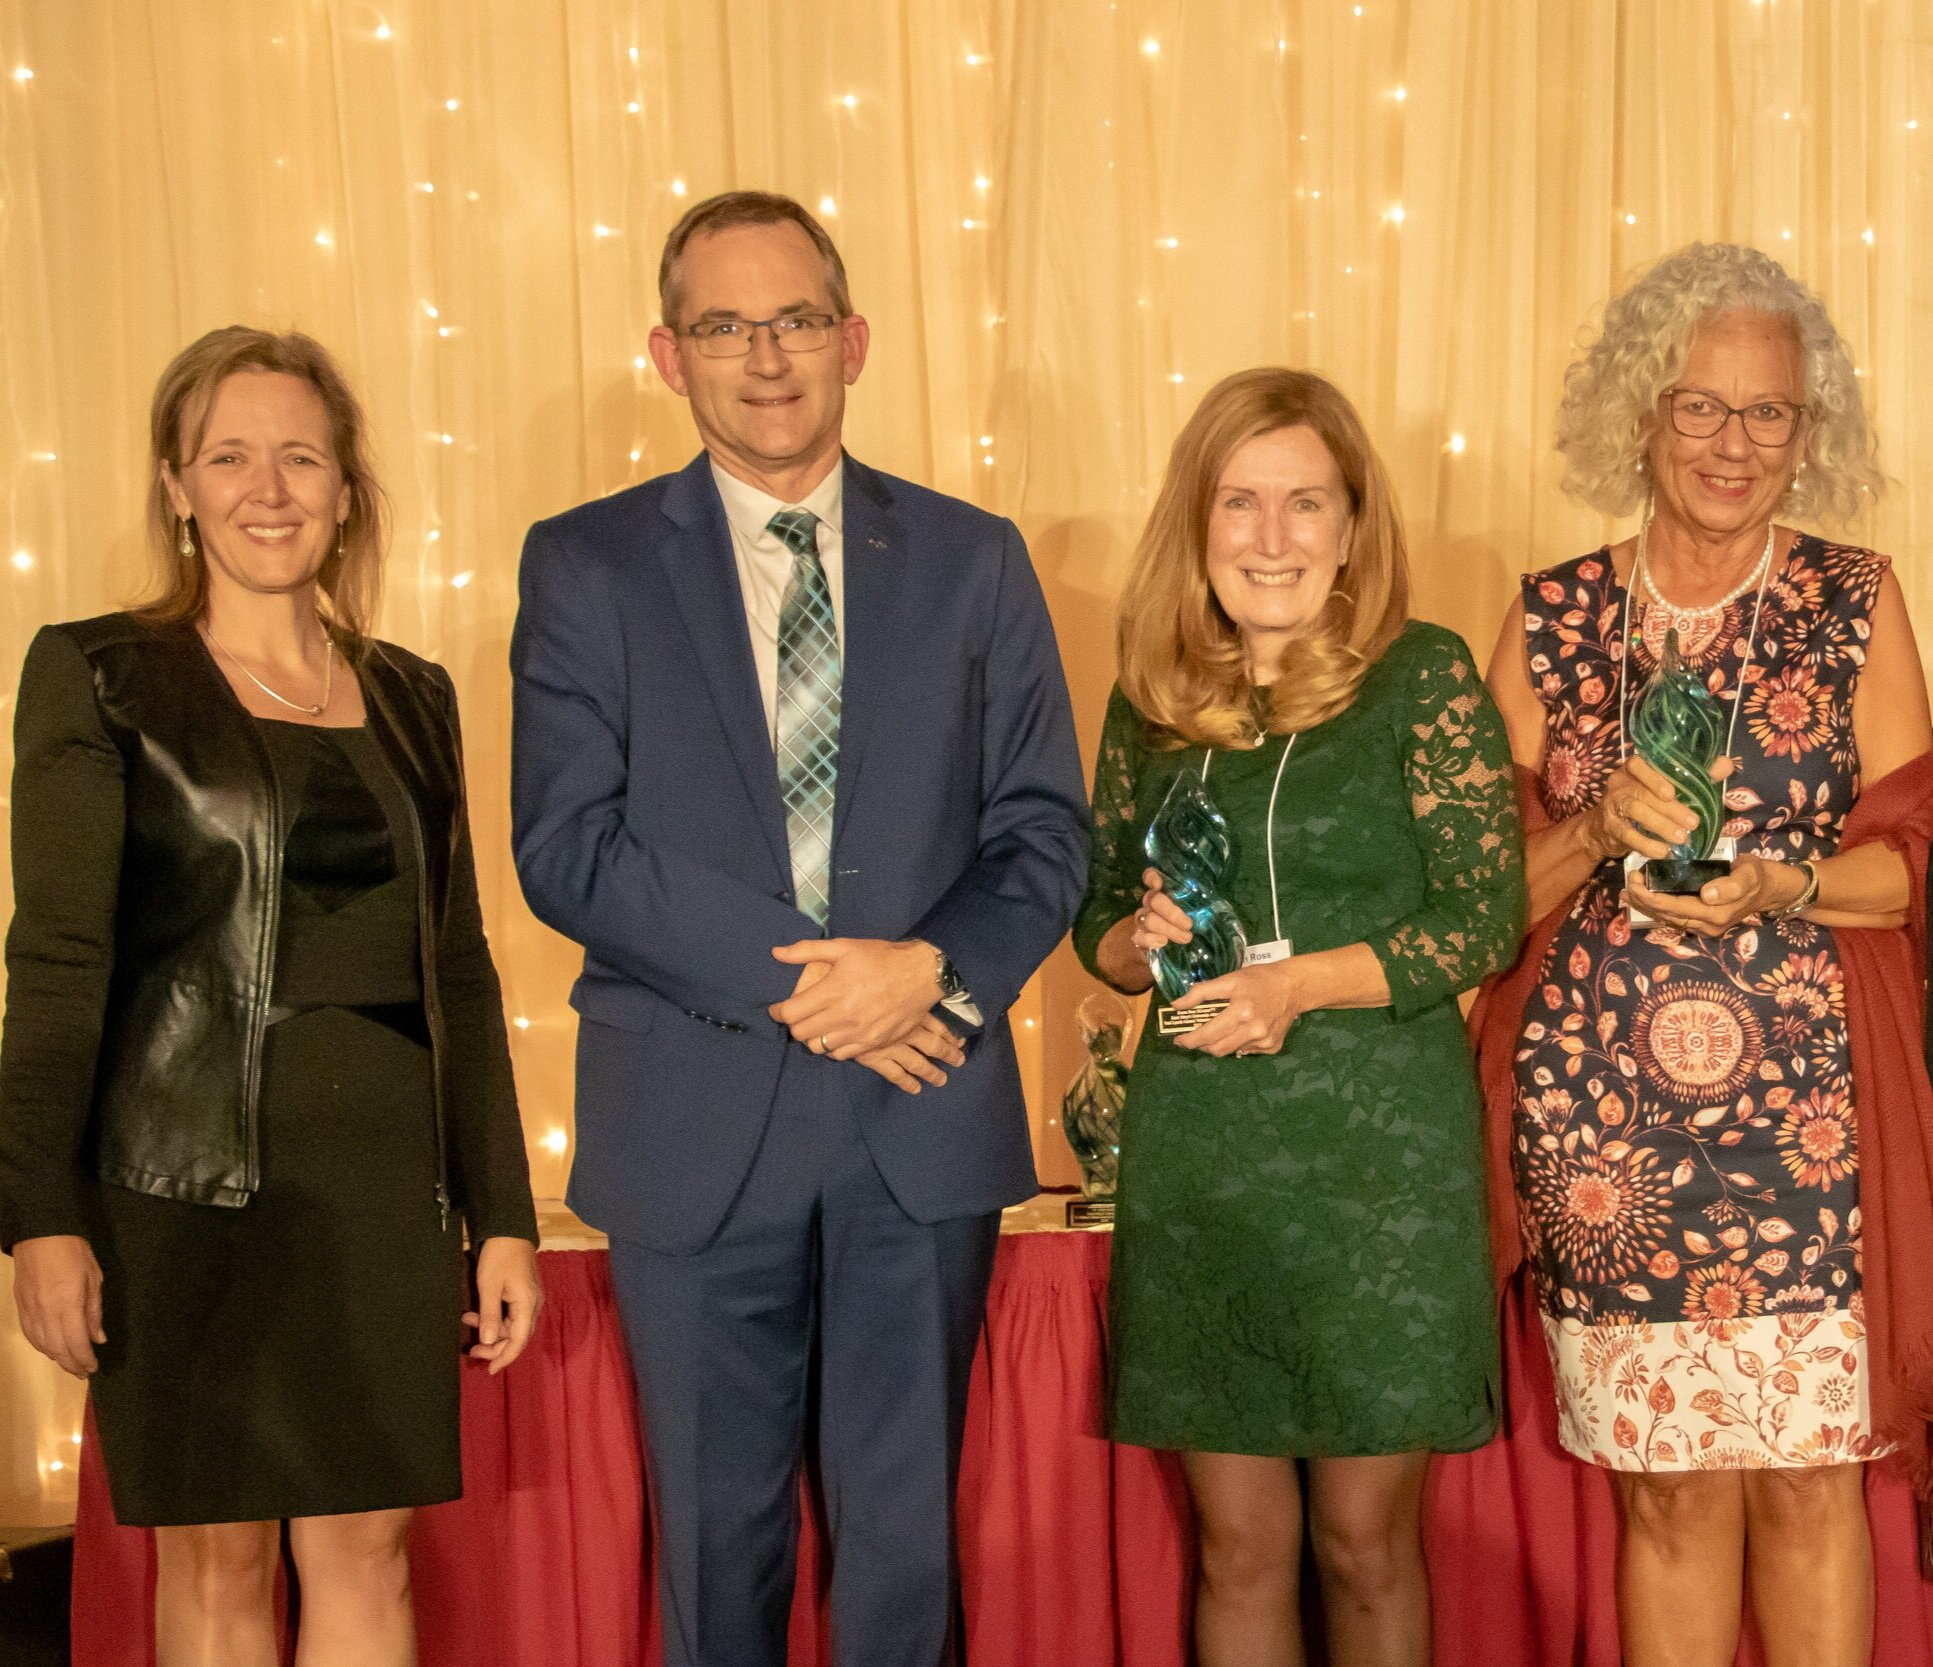 Erin Sargeant Greenwood and Dr. Rob Summerby-Murray with alumni award winners Karen Ross and Joann Boulos-Callias